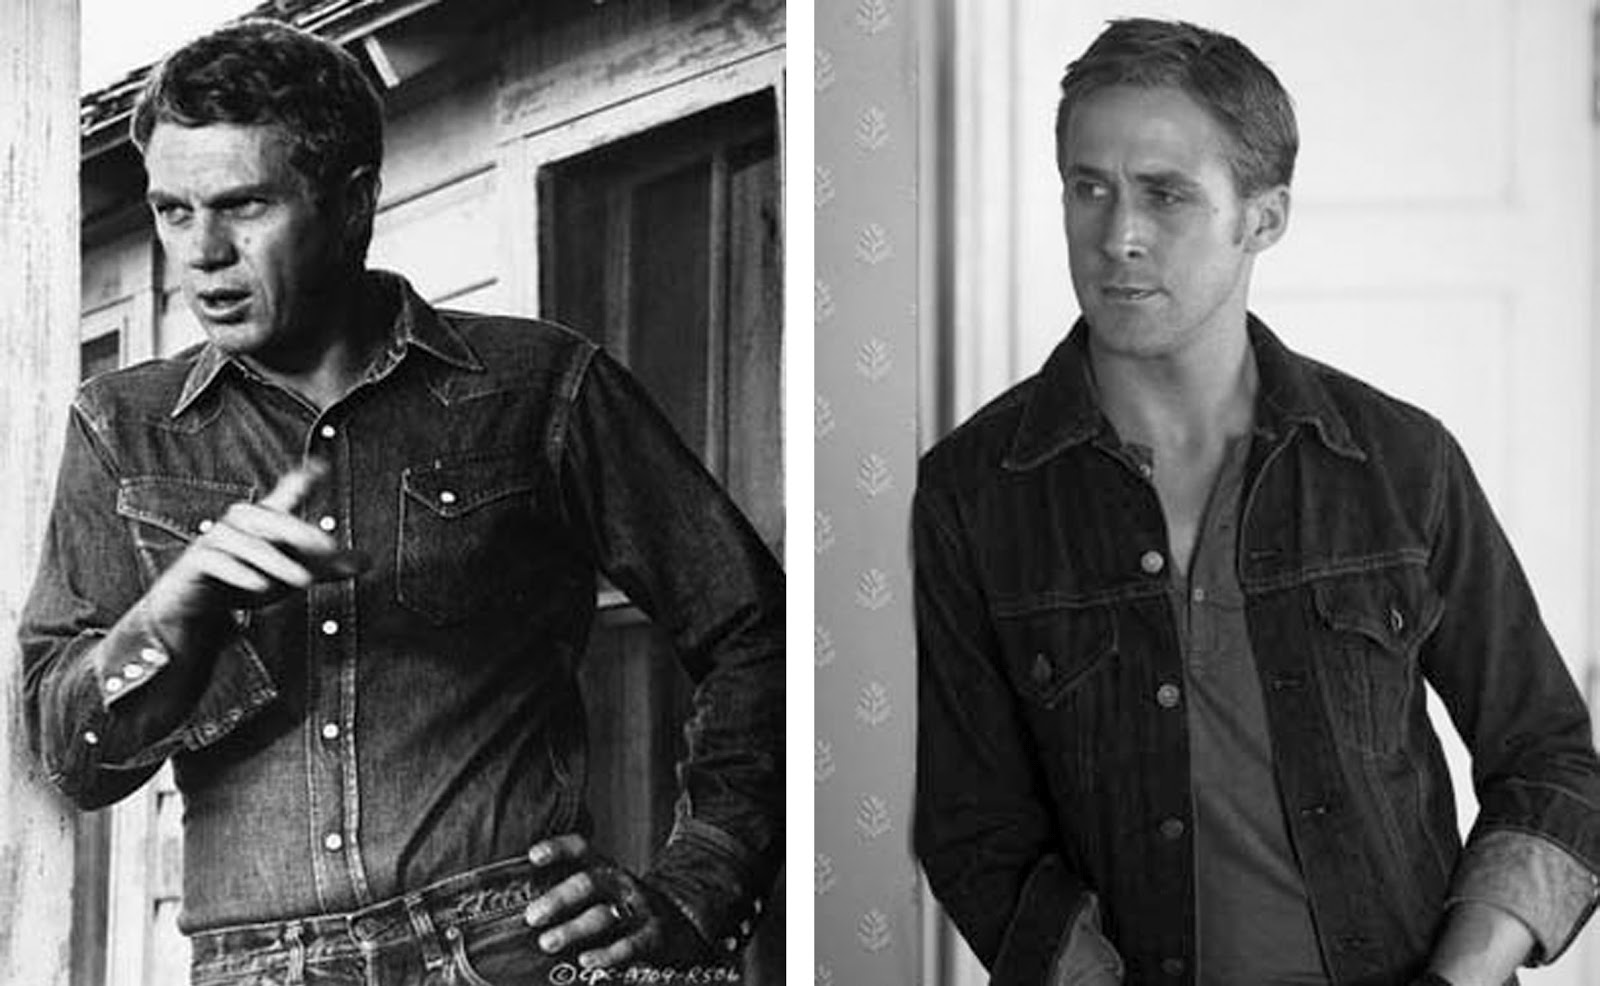 with widows steve mcqueen fashions his version of the - HD1600×986